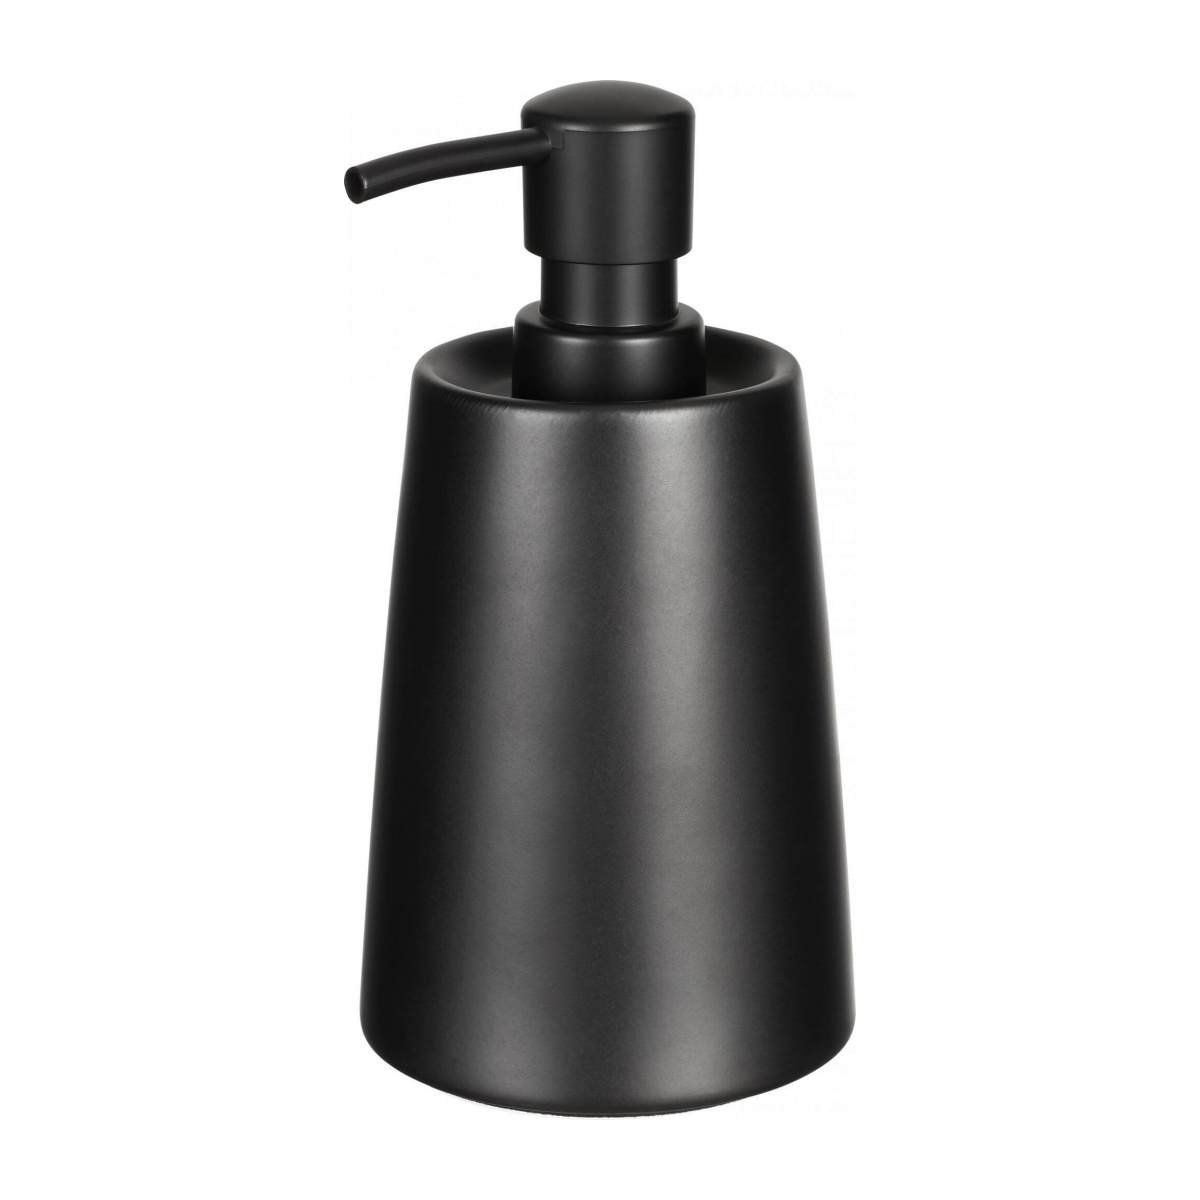 Soap Dispenser Black n°1